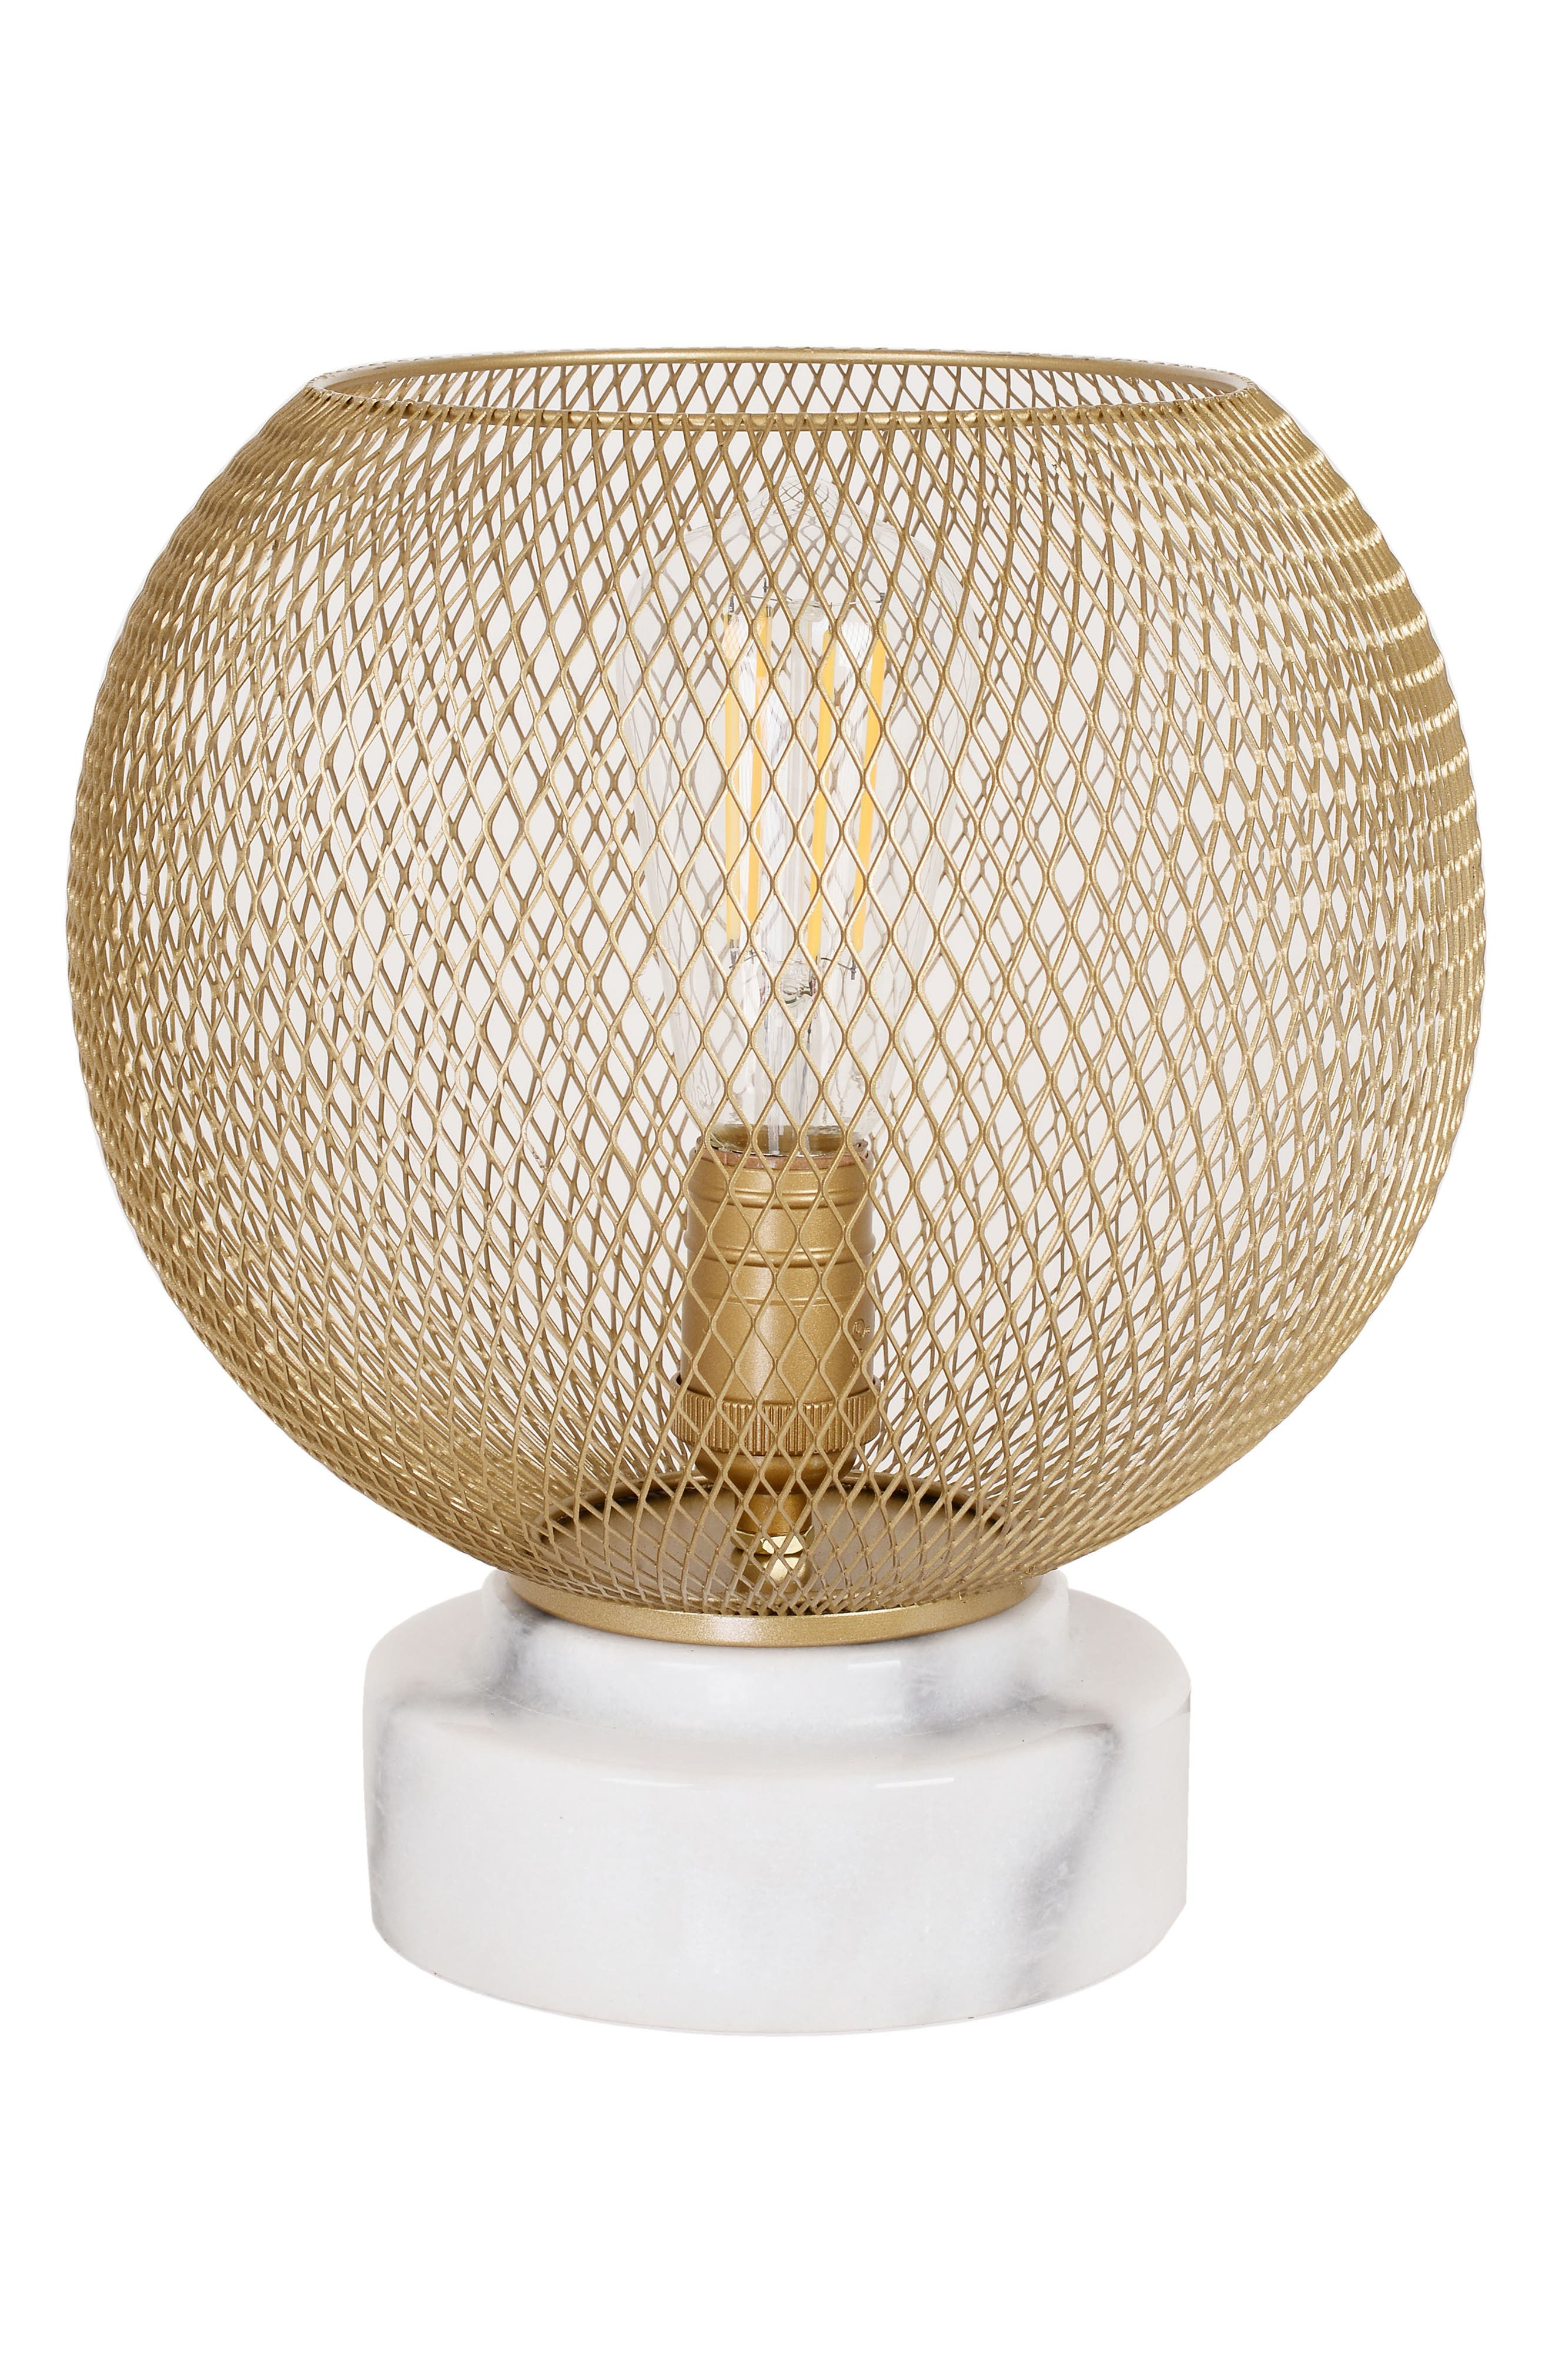 Mesh & Marble Uplight Lamp,                             Main thumbnail 1, color,                             710